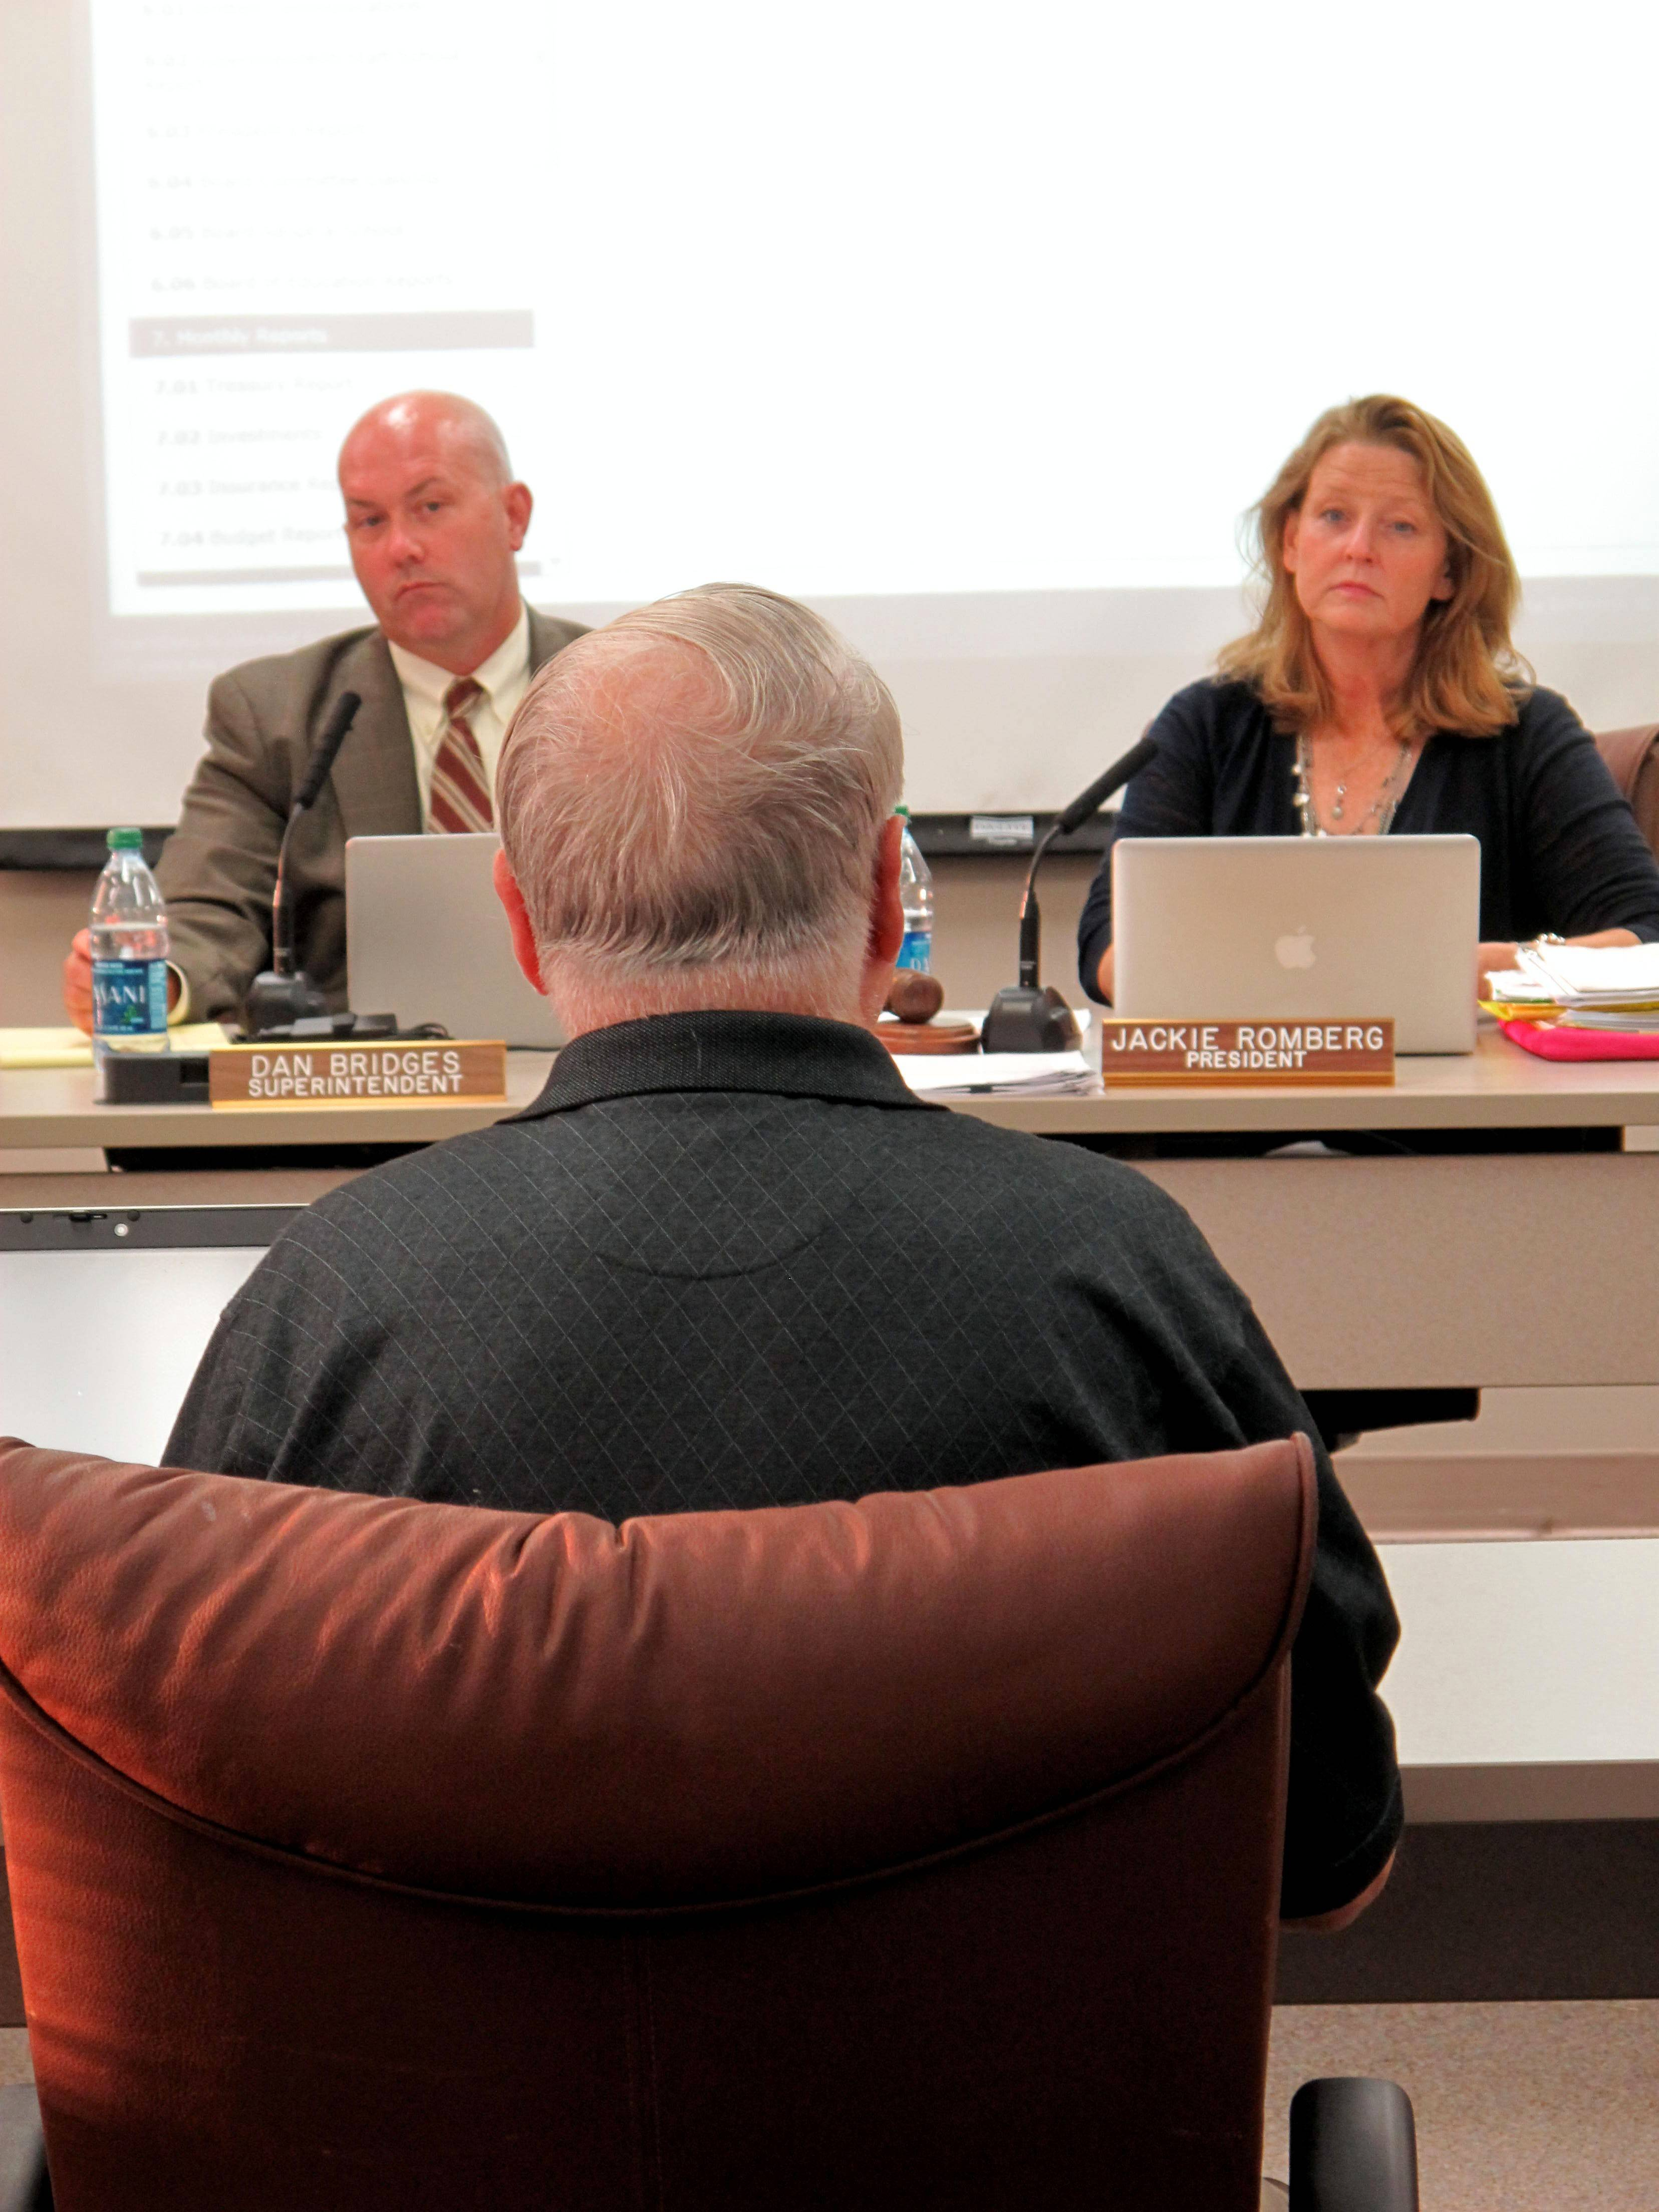 Naperville Unit District 203 Superintendent Dan Bridges and school board President Jackie Romberg listen to Naperville resident Charlie Brown explain his opposition to a proposal to allow AT&T to lease space at Kennedy and Lincoln junior highs for cell towers.